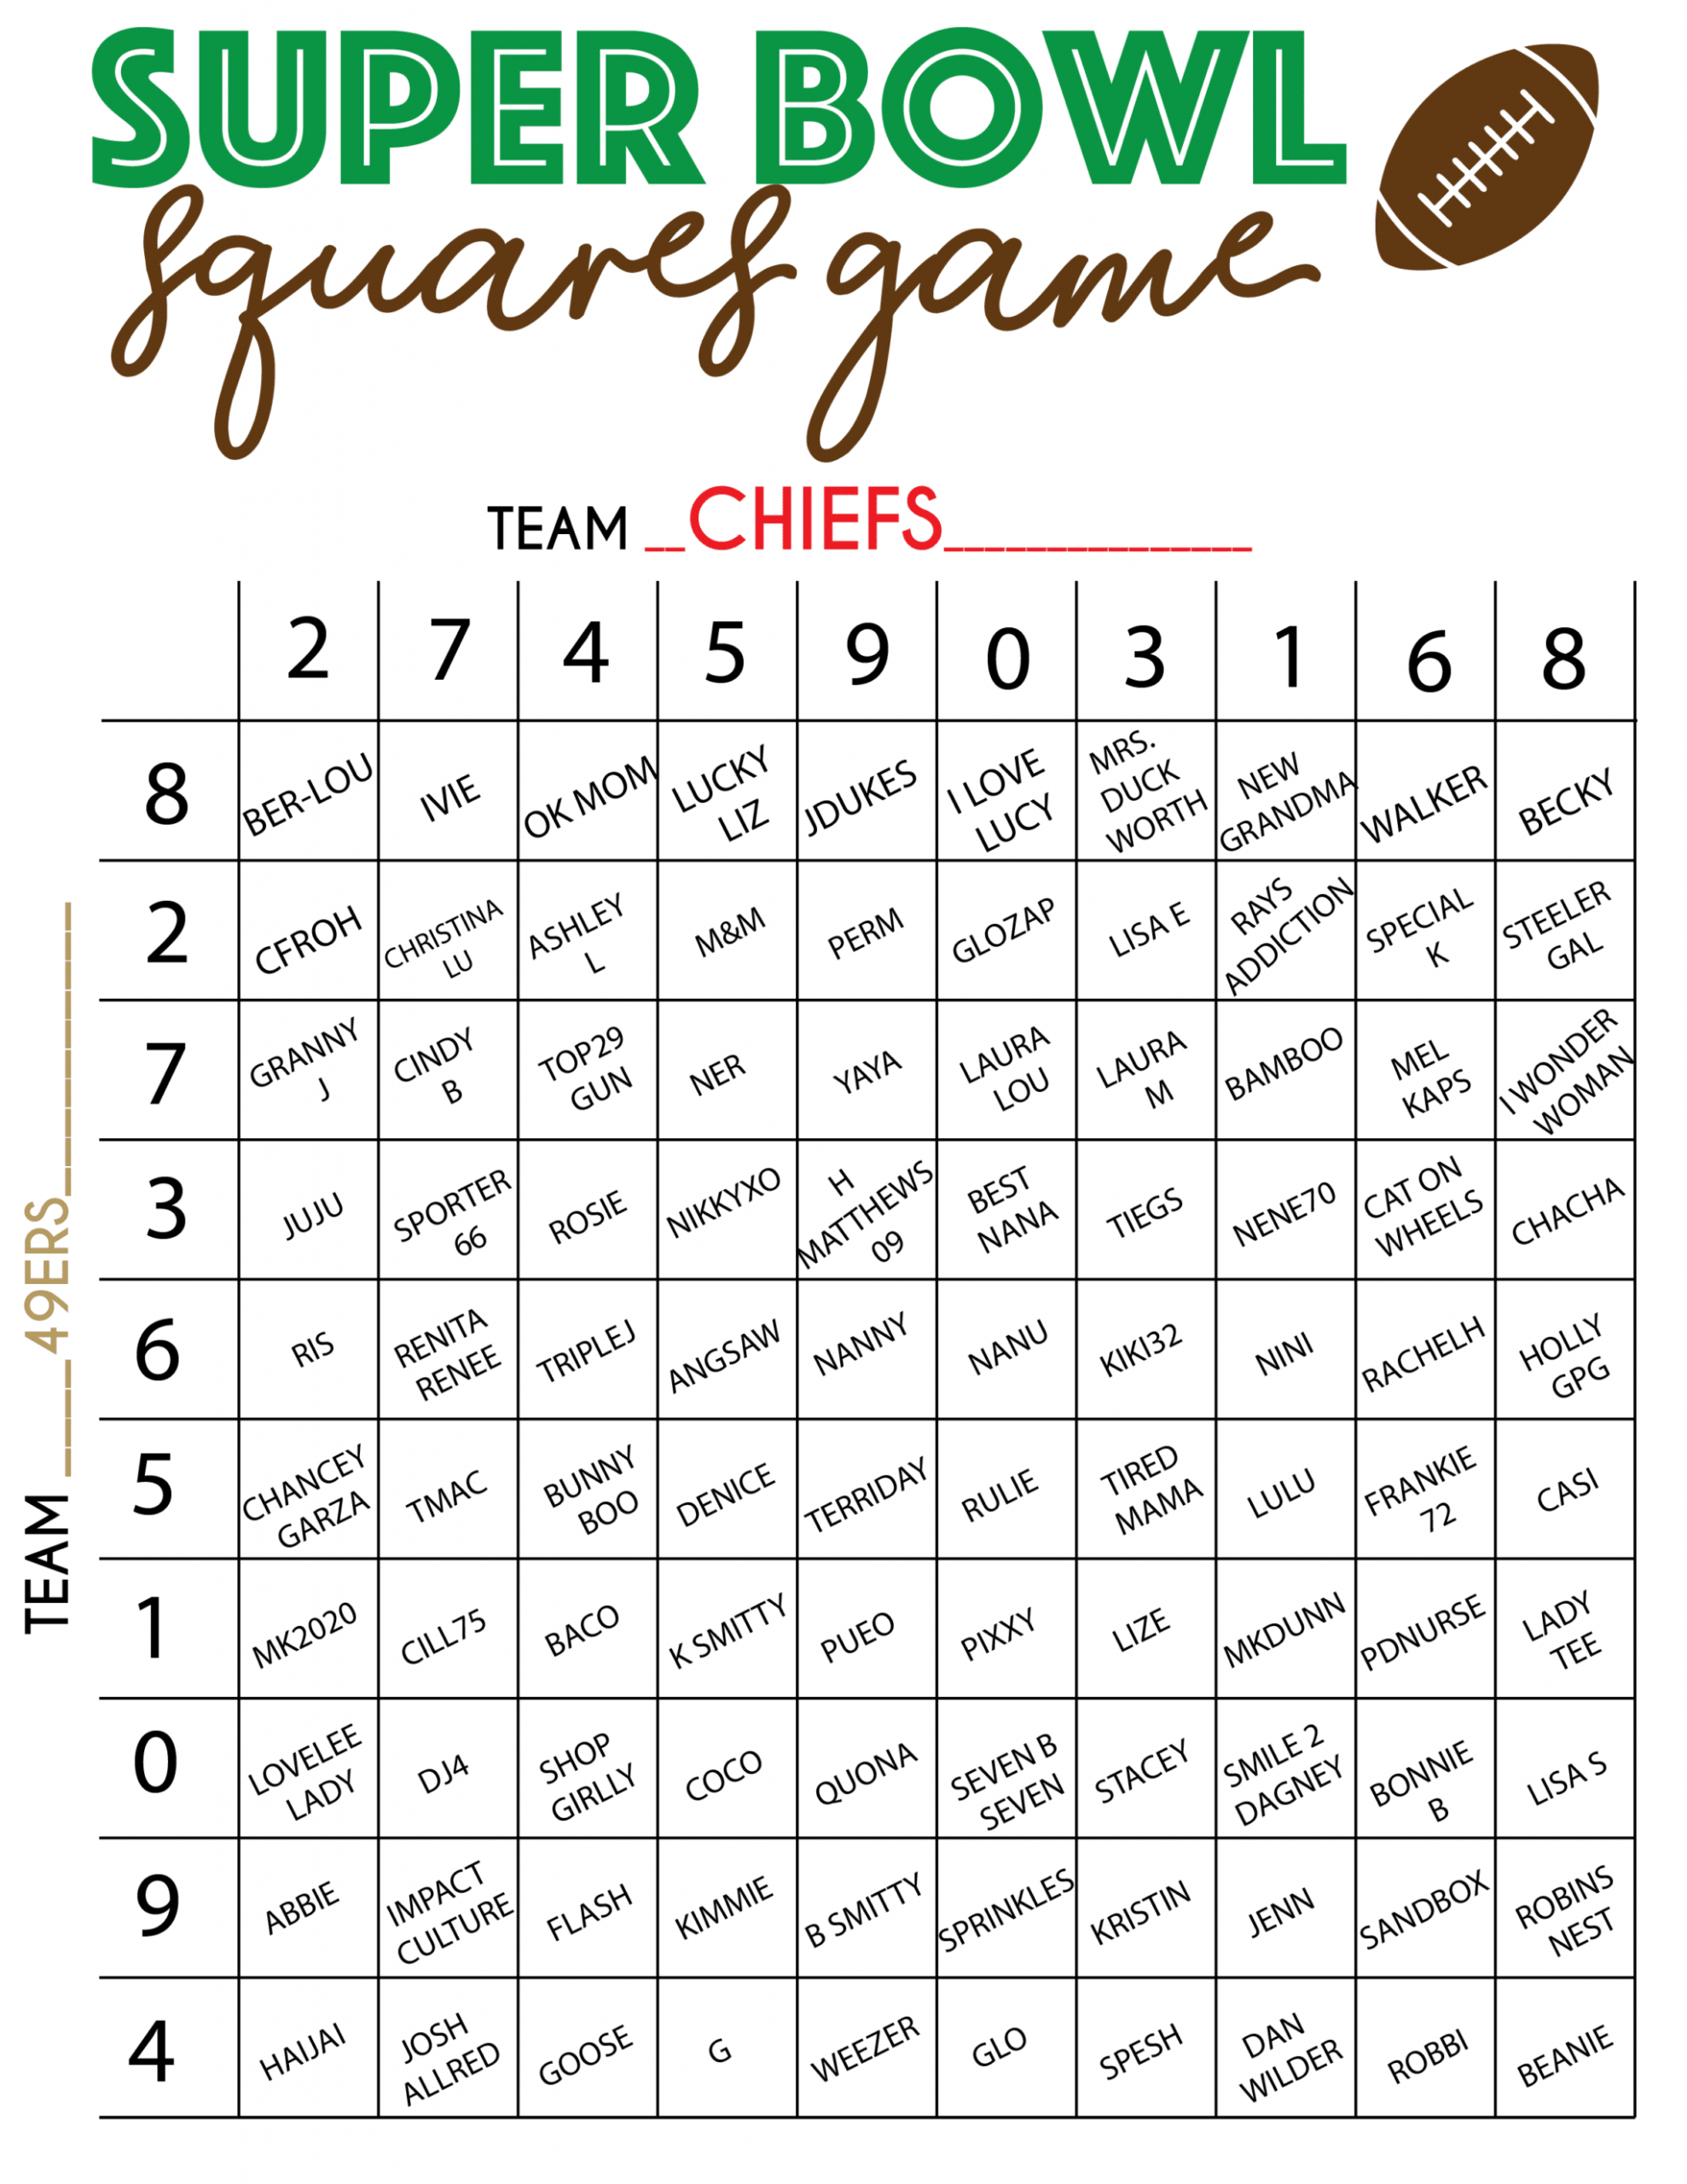 Super Bowl Liv Squares Pdf - Daily Superbowl News 2020